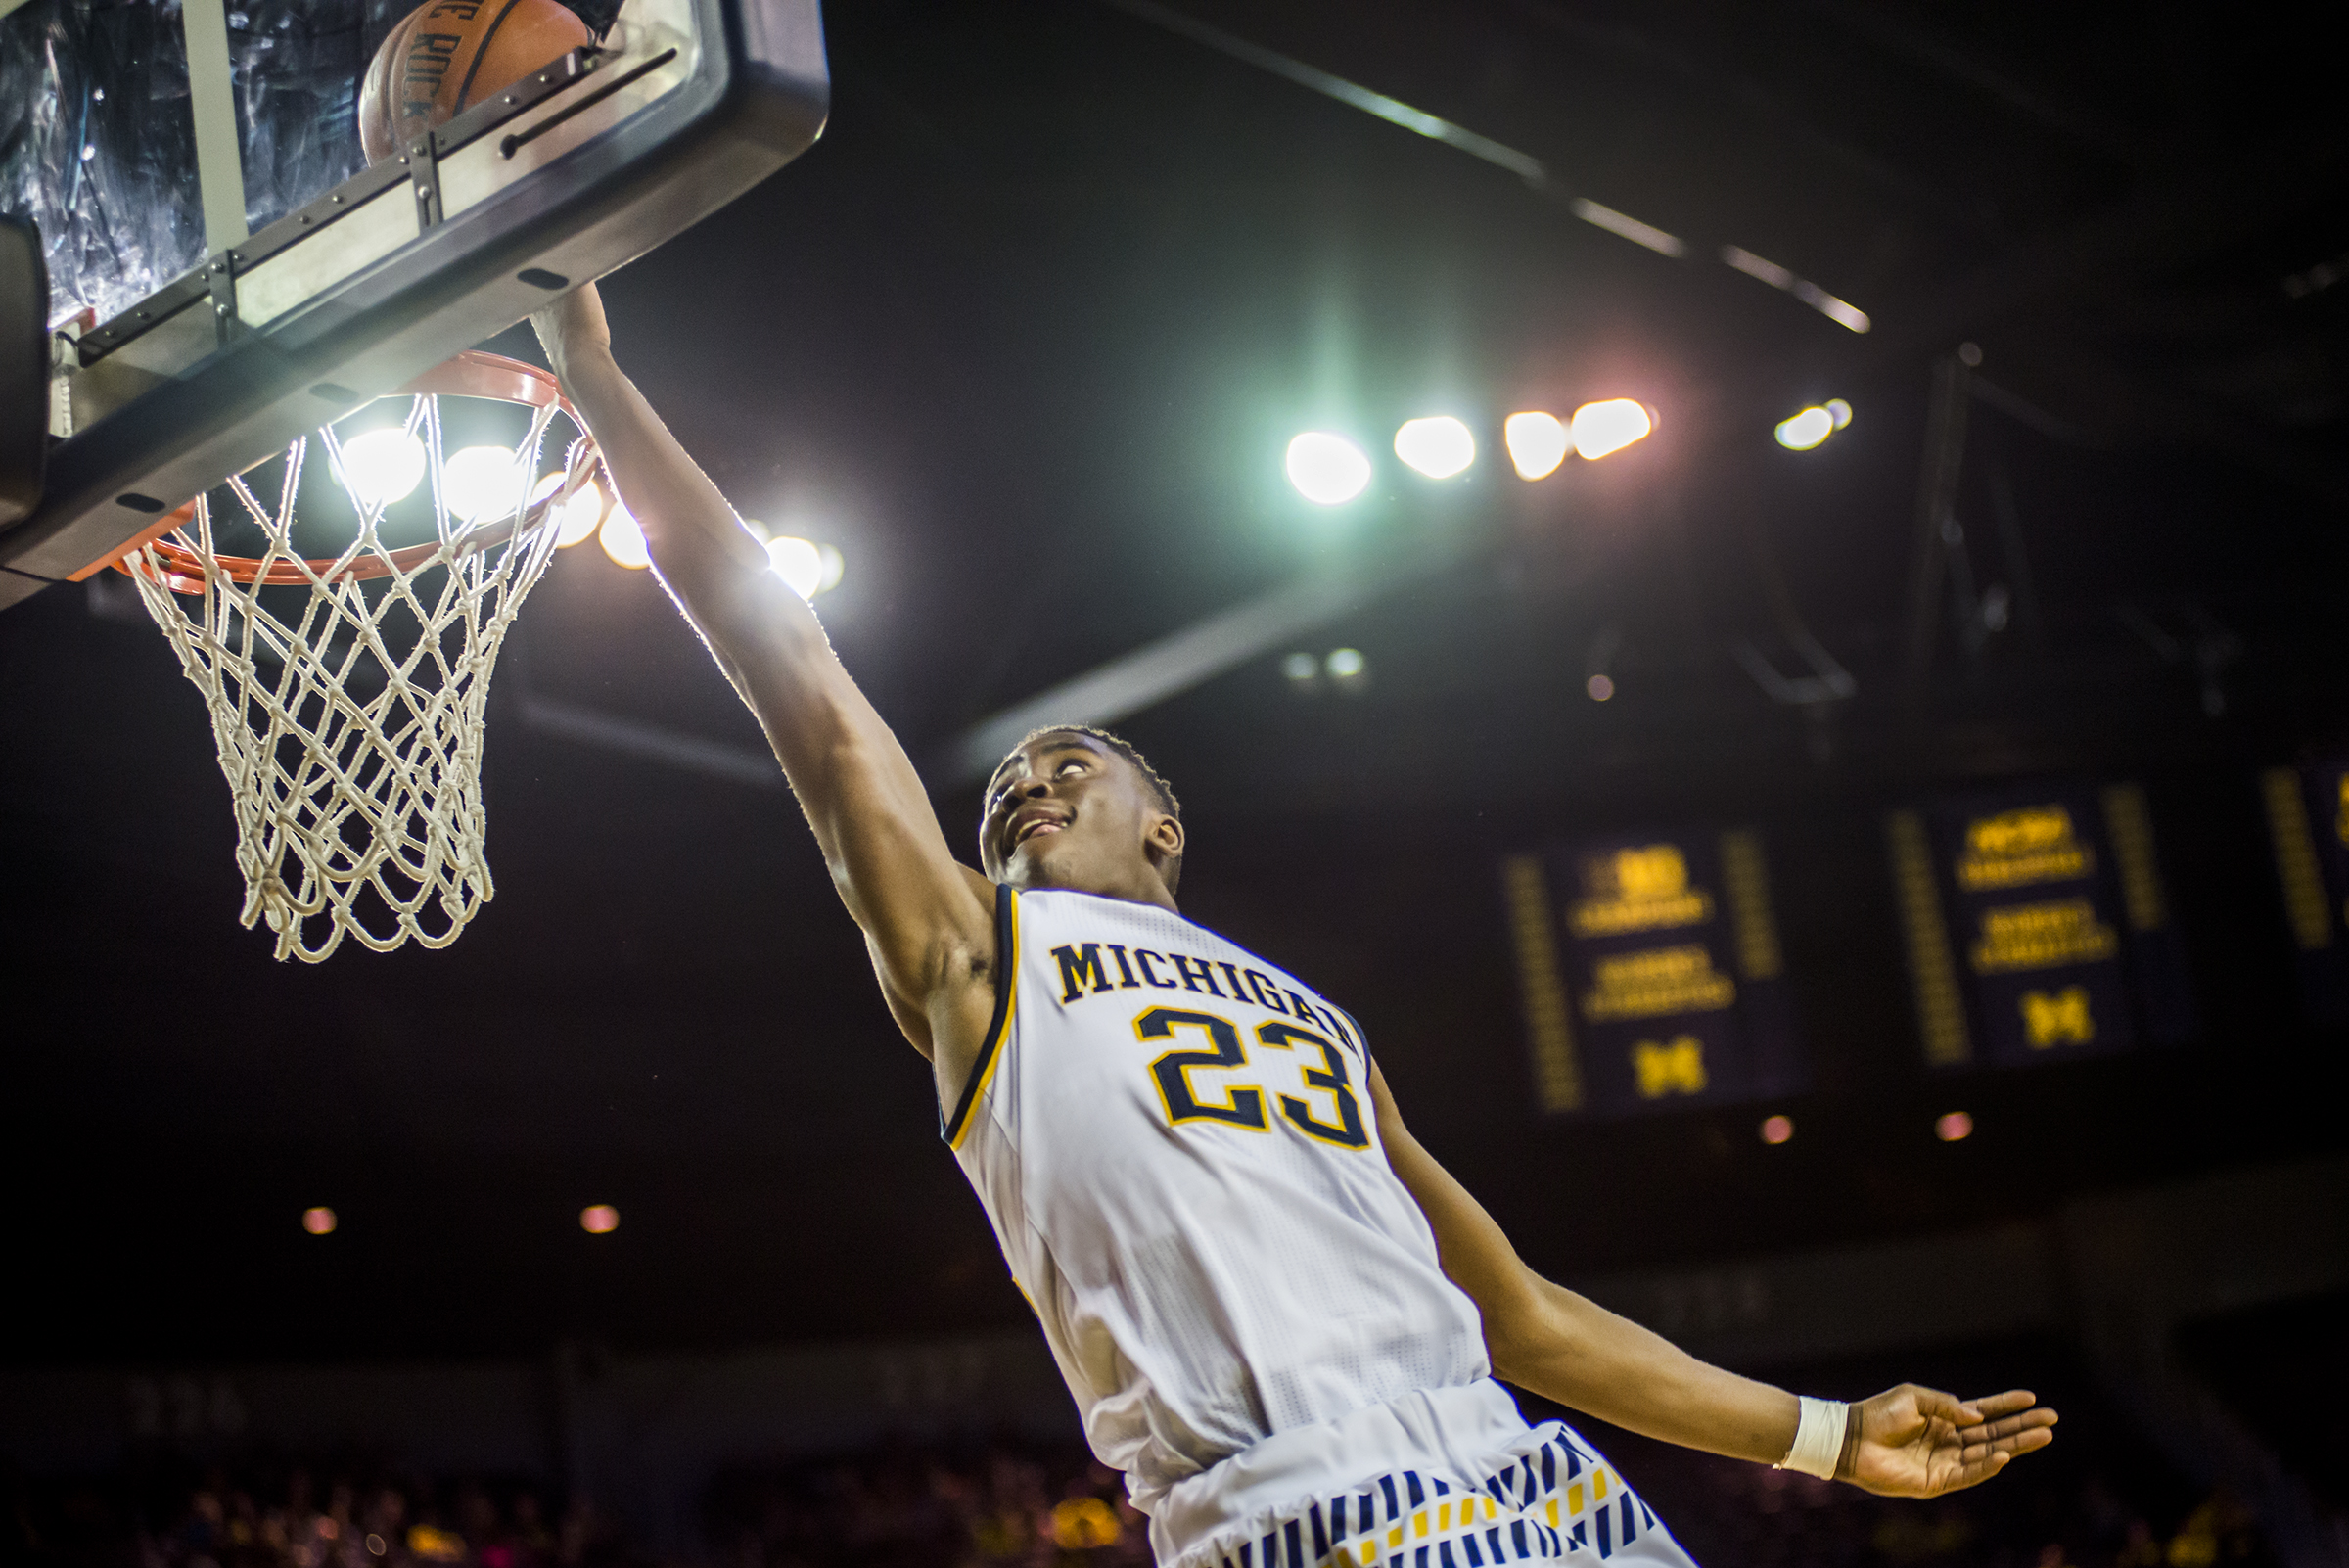 Senior Caris LeVert goes up for a basket during Michigan's 82-57 defeat of Houston Baptist at Crisler Center on December 5, 2015.